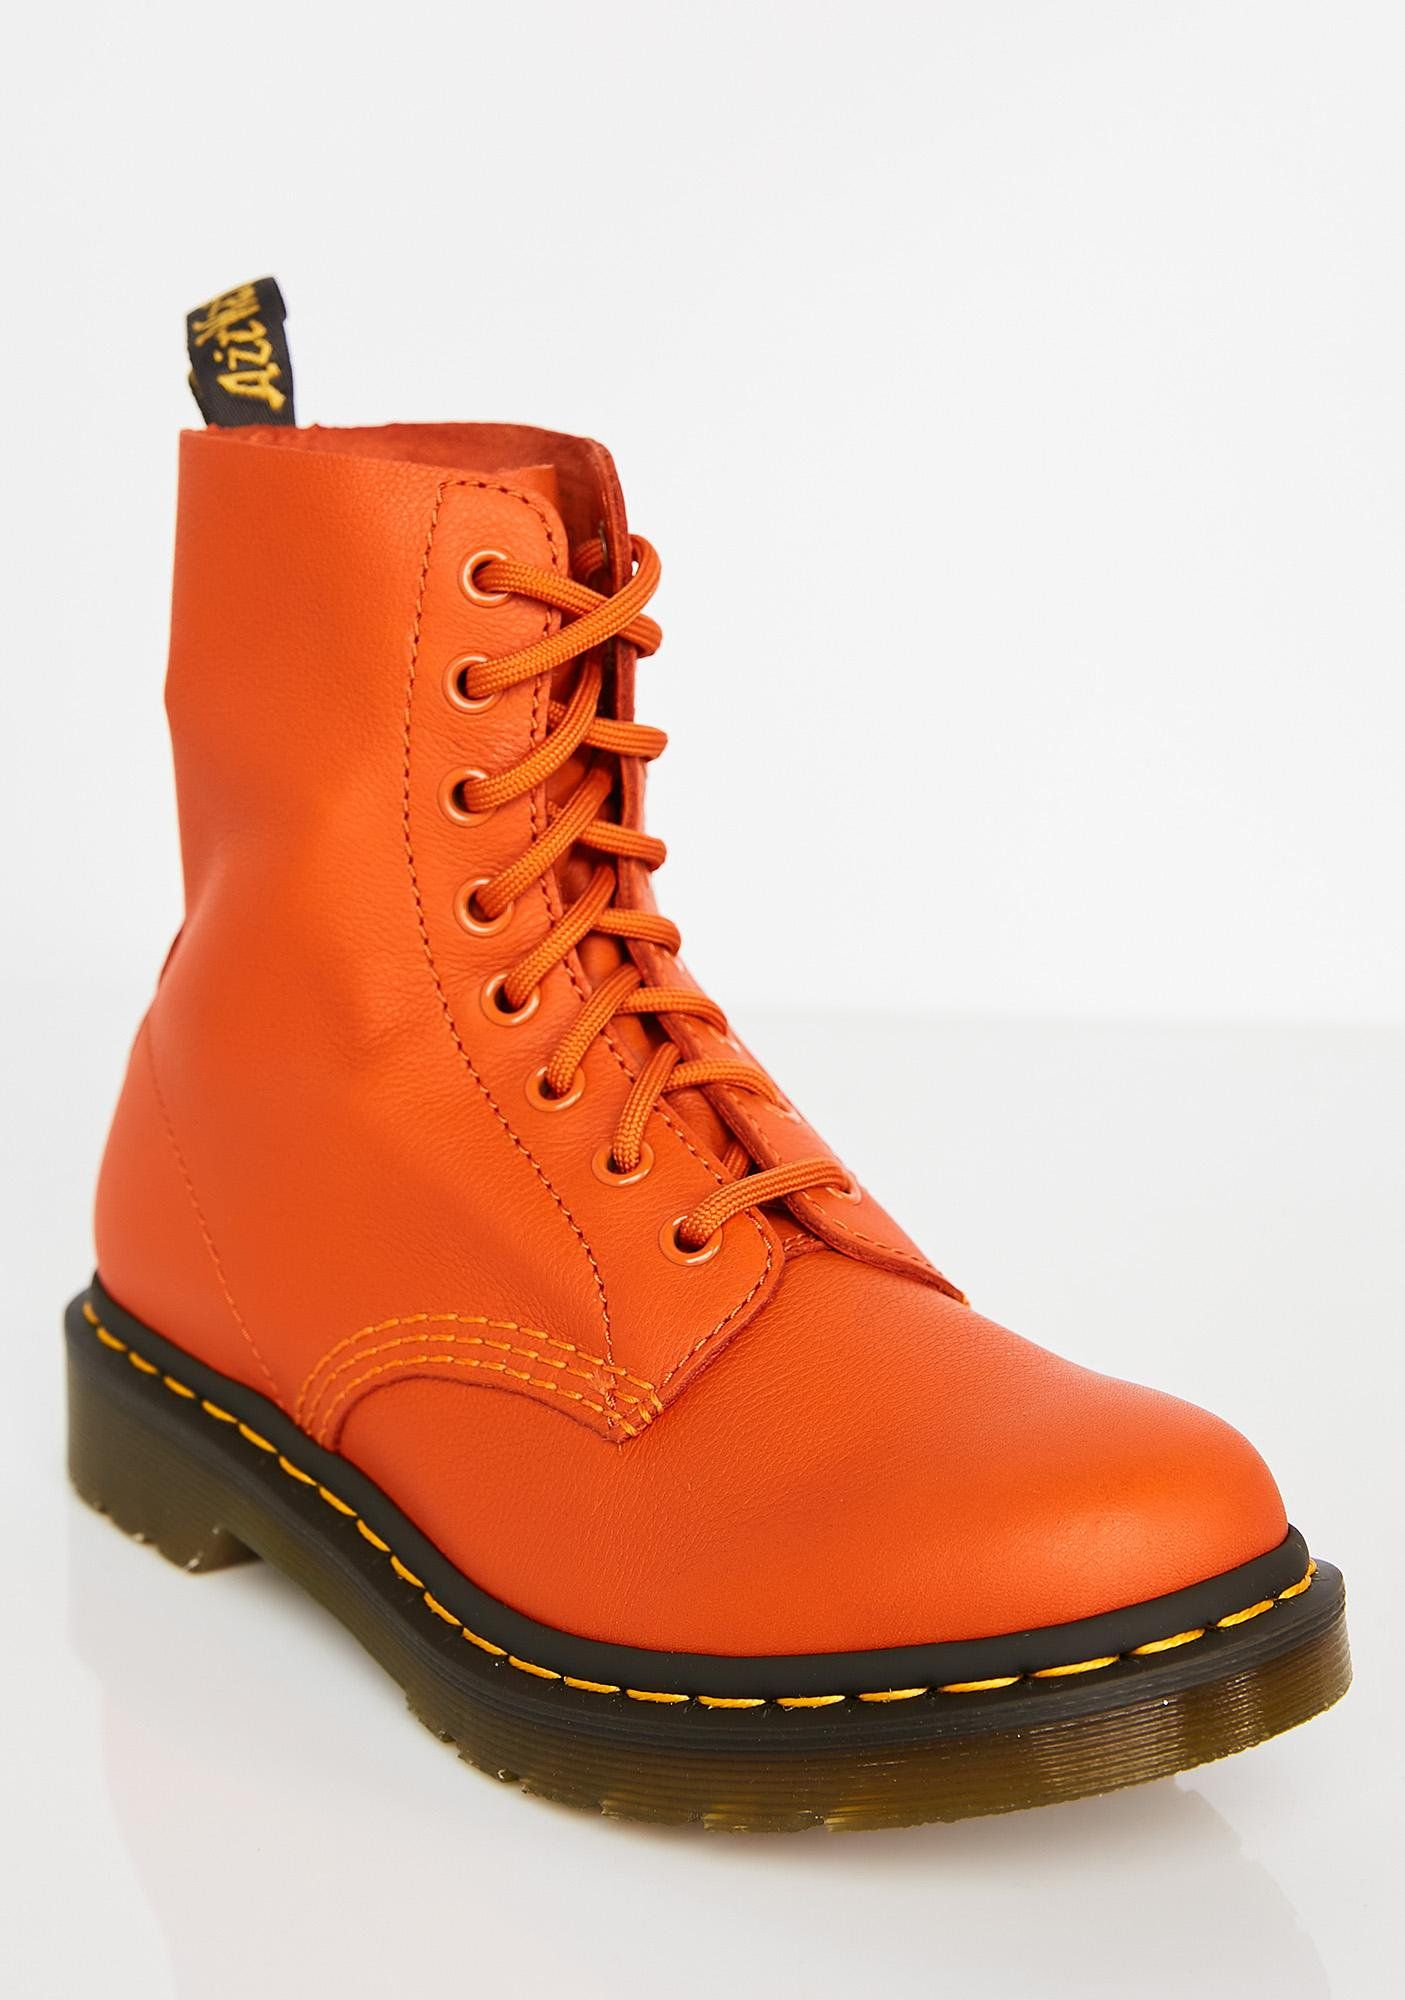 Dr. Martens 1460 Pascal Burnt Orange Boots 5853740895cb